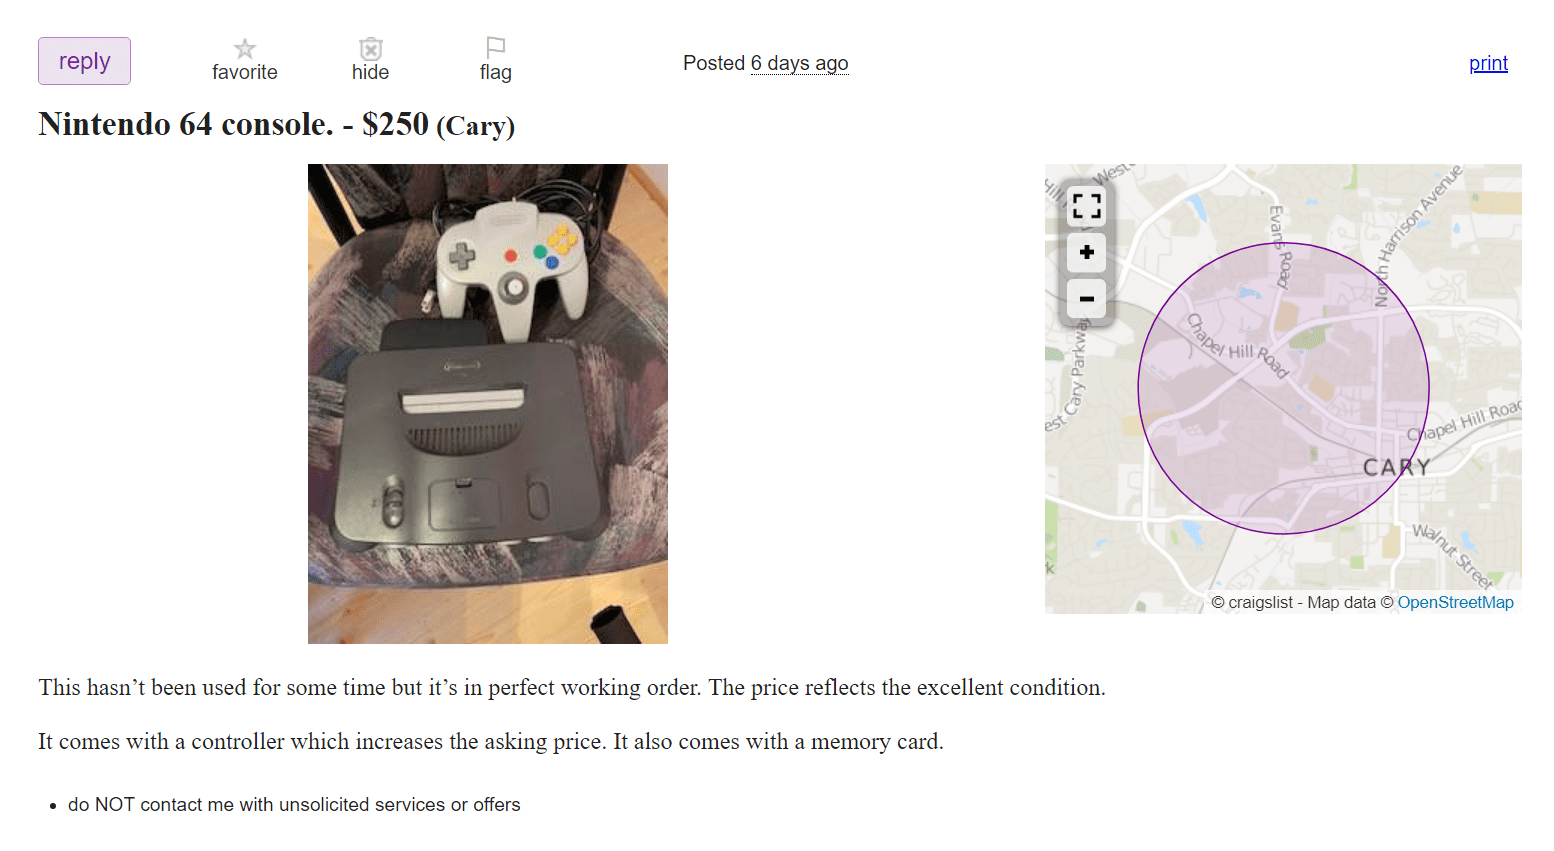 It wouldn't surprise me if the AC cord was extra too